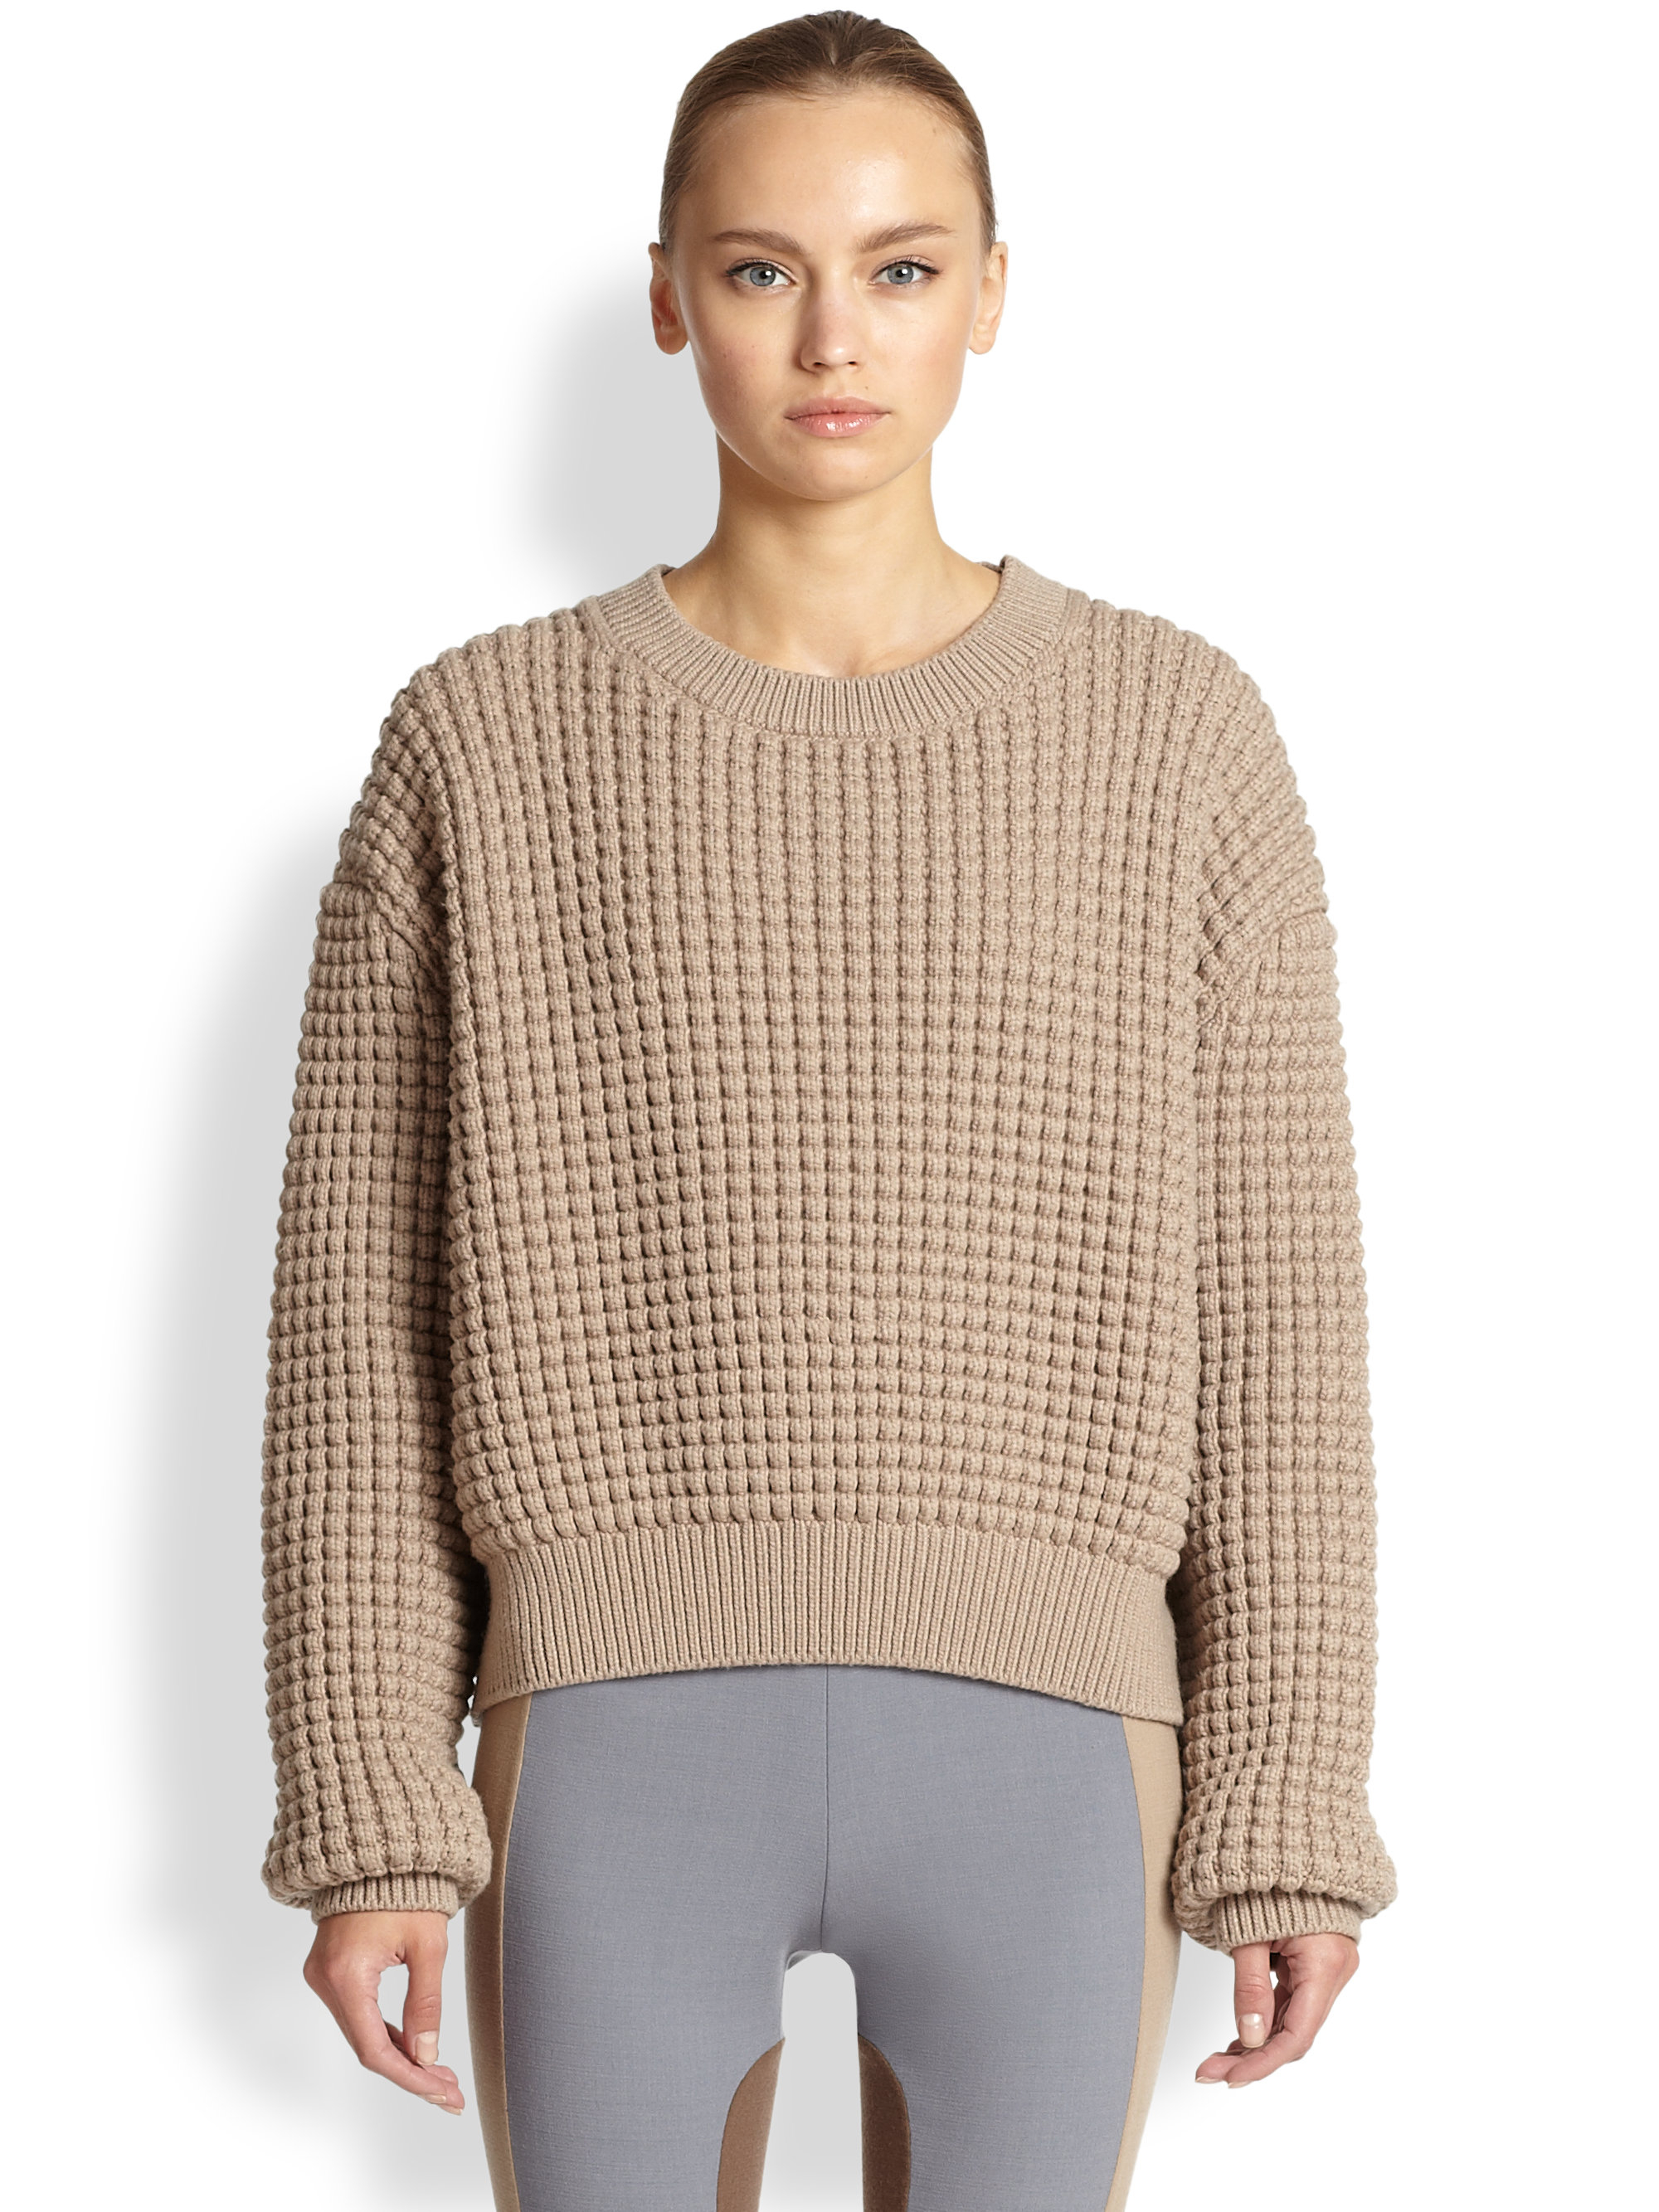 Marc jacobs Cropped Chunky-Knit Pullover in Gray | Lyst